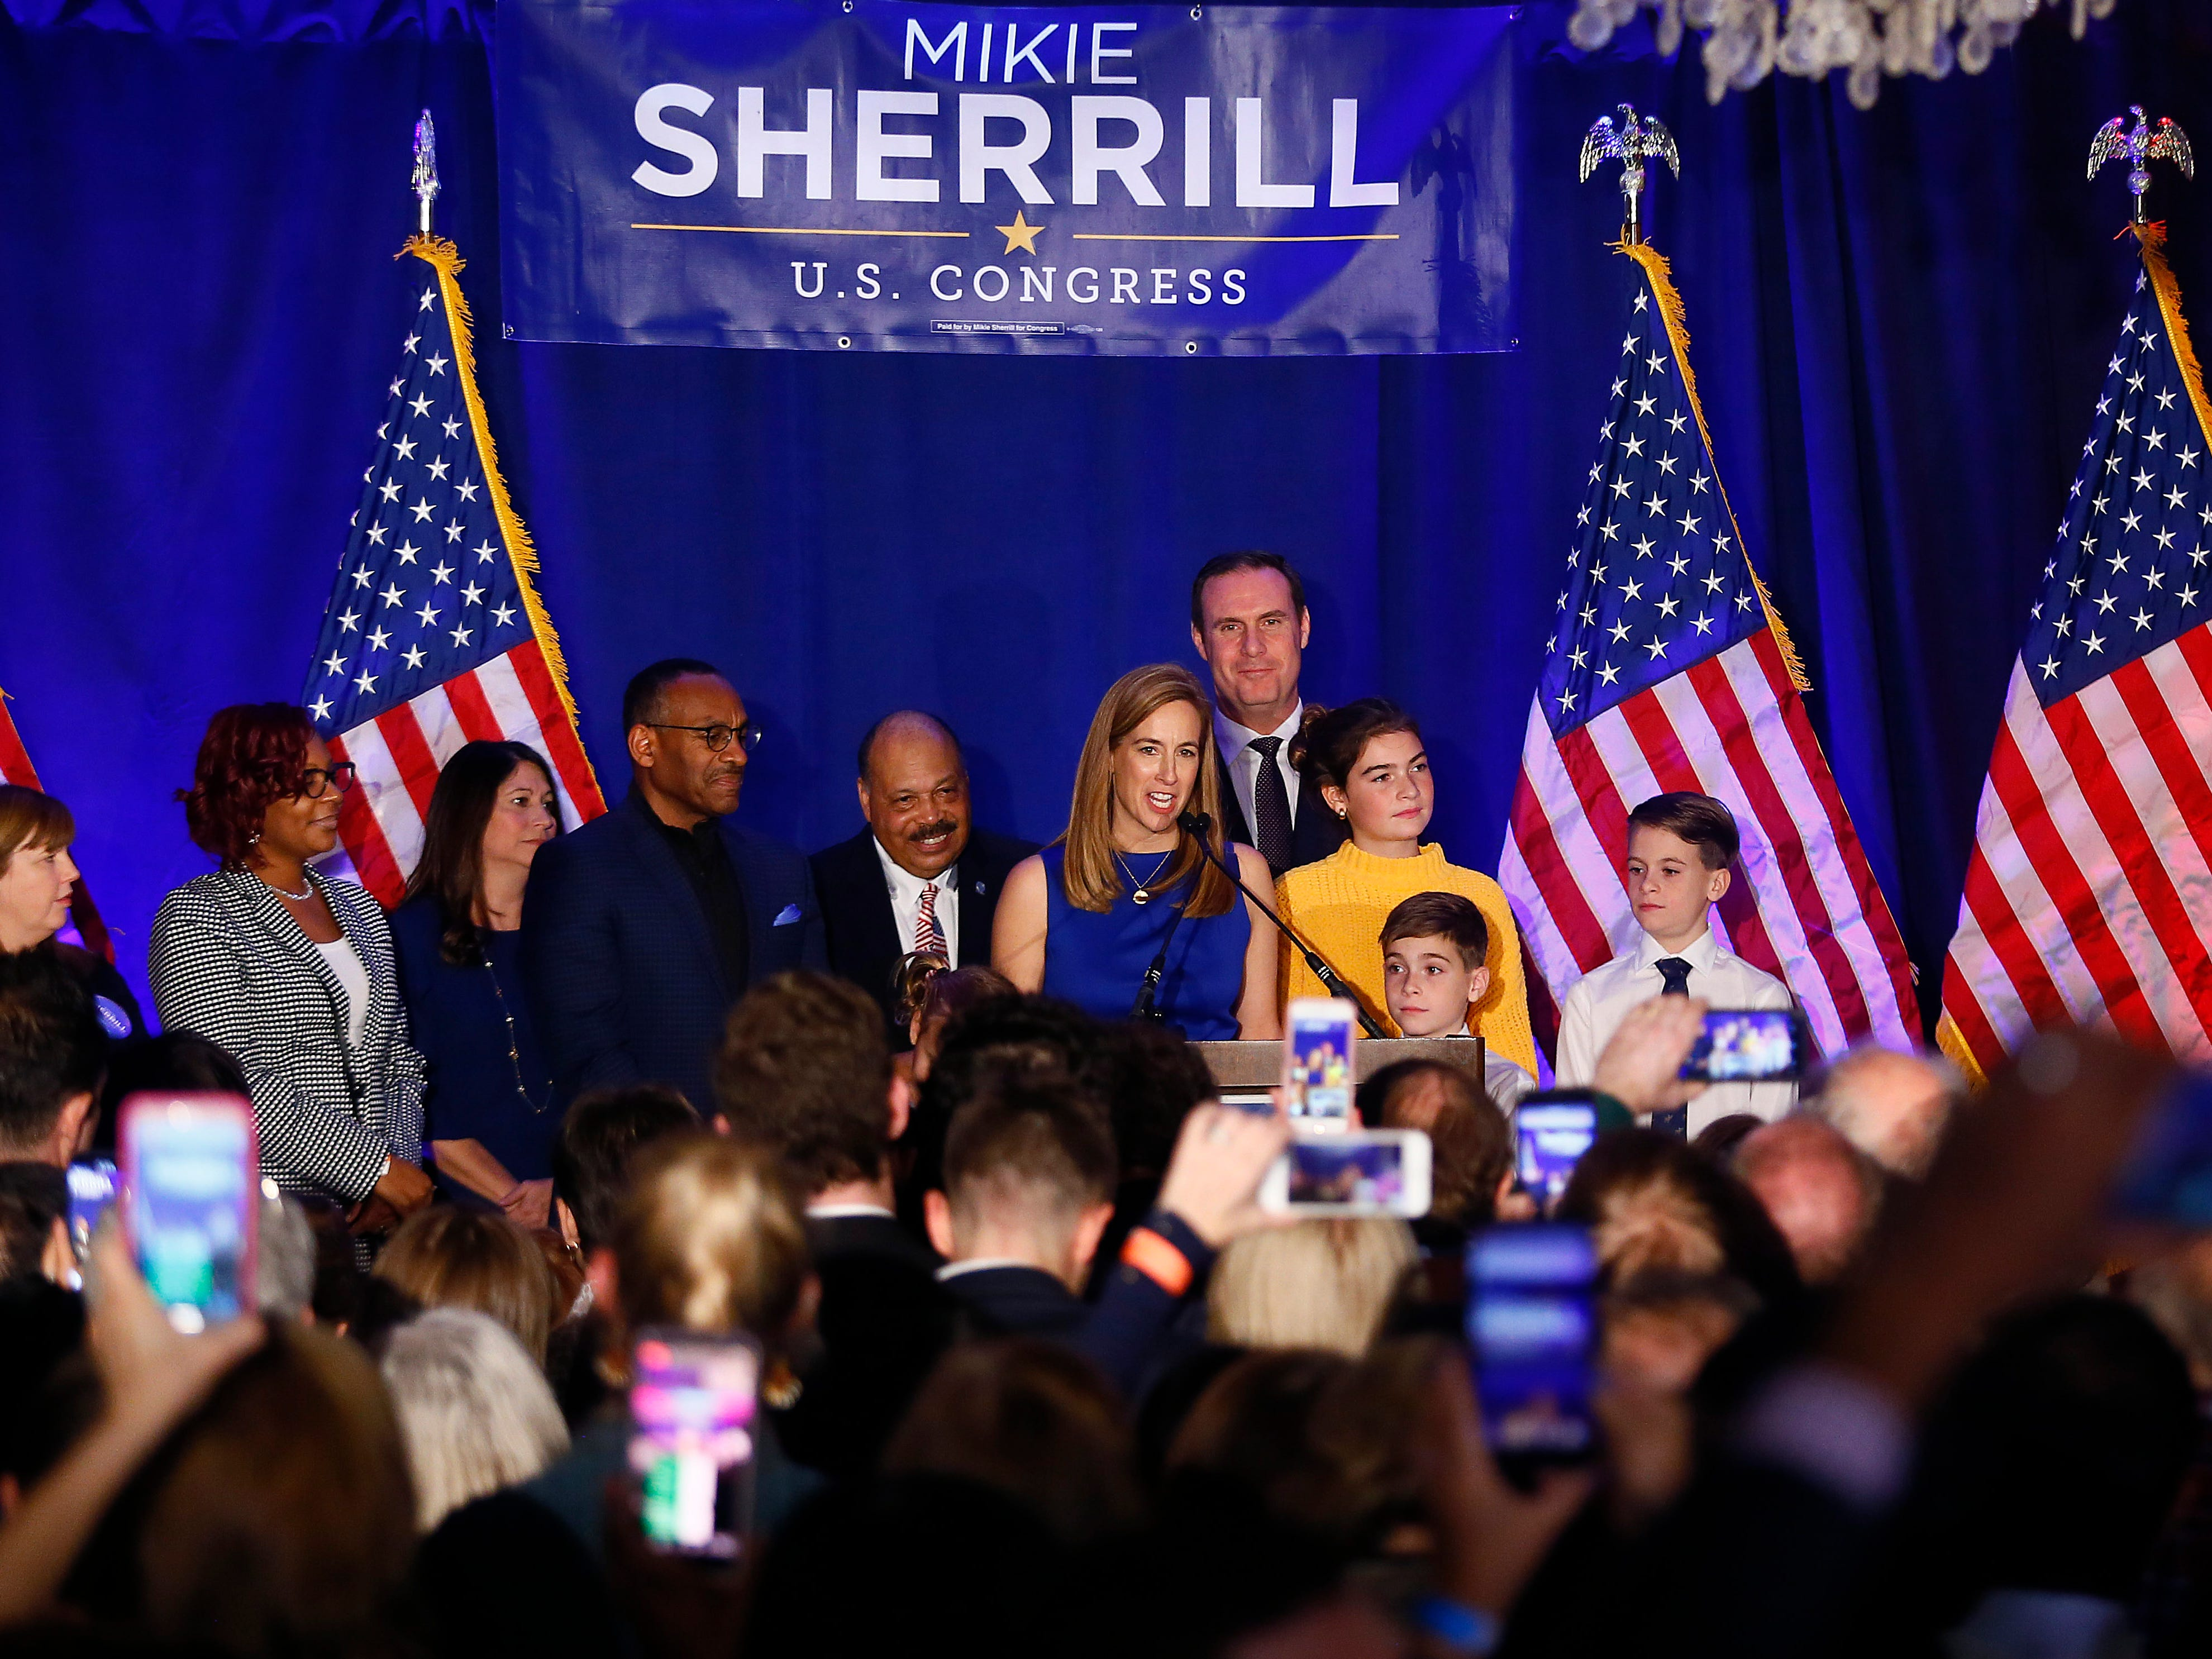 Mikie Sherrill makes her acceptance speech, winning for the Democrats a seat held by Republicans for more than 30 years. Sherrill defeated Republican candidate, state Assemblyman Jay Webber in the 11th District.